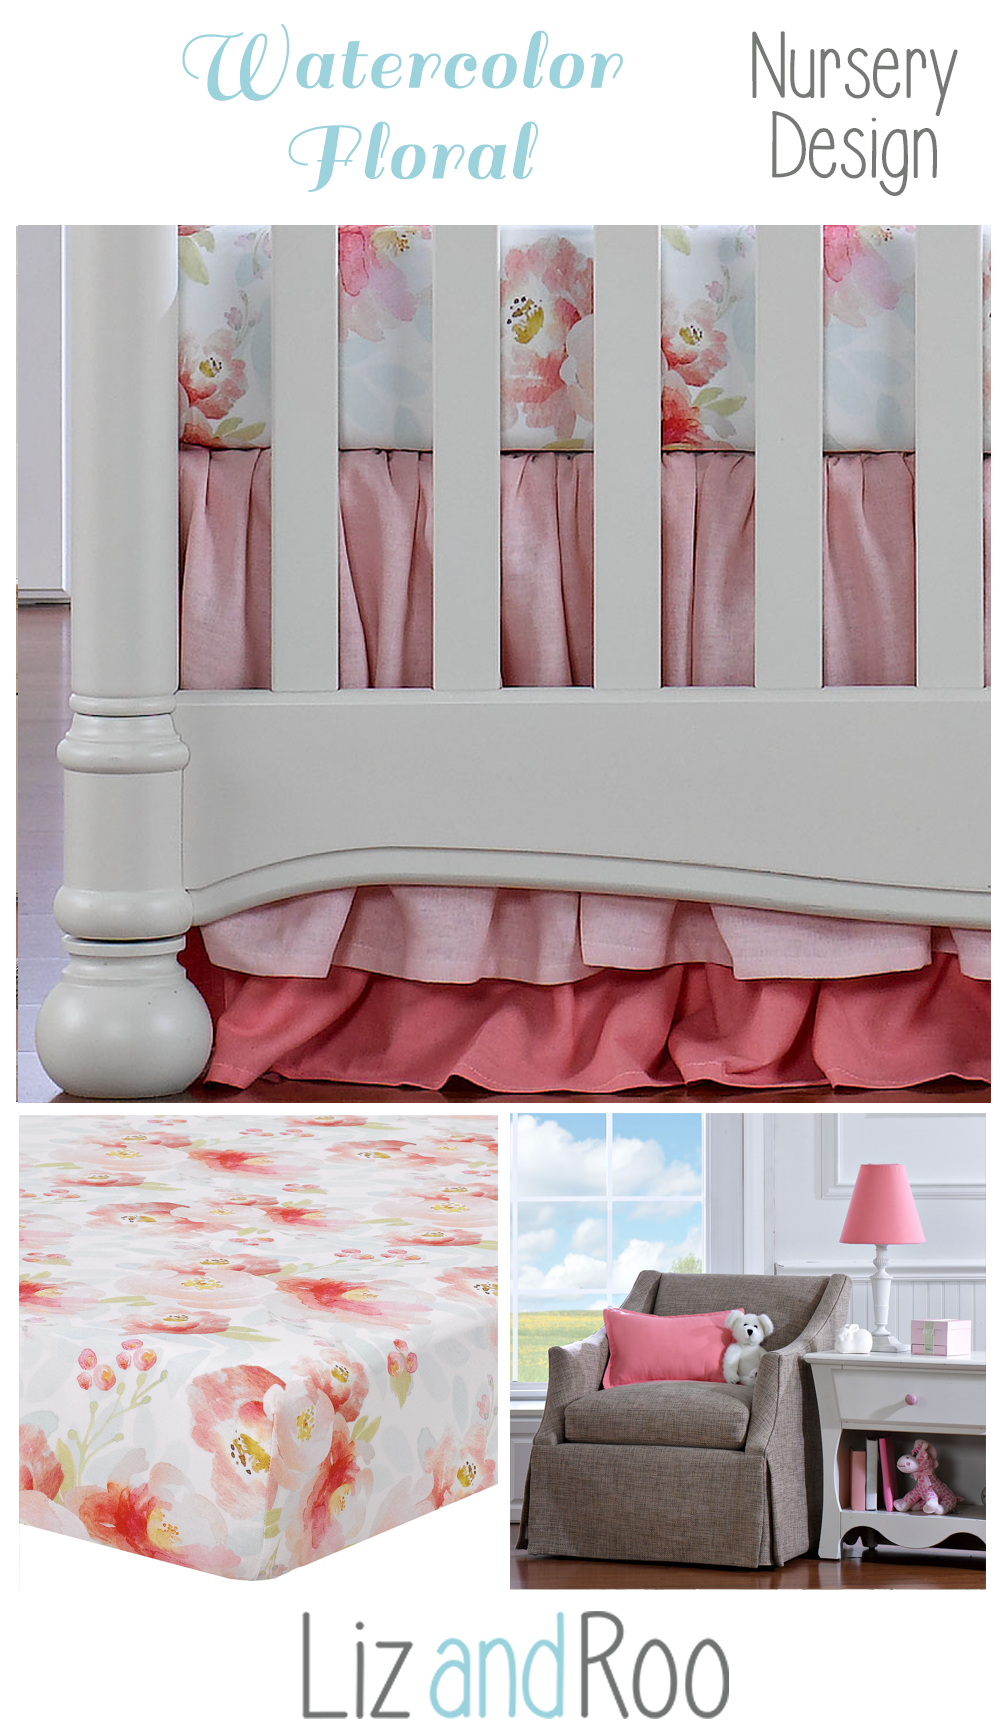 Floral Nursery Bedding New Watercolor Floral Bumperless Crib Bedding  Floral Nursery Nursery Design Decoration